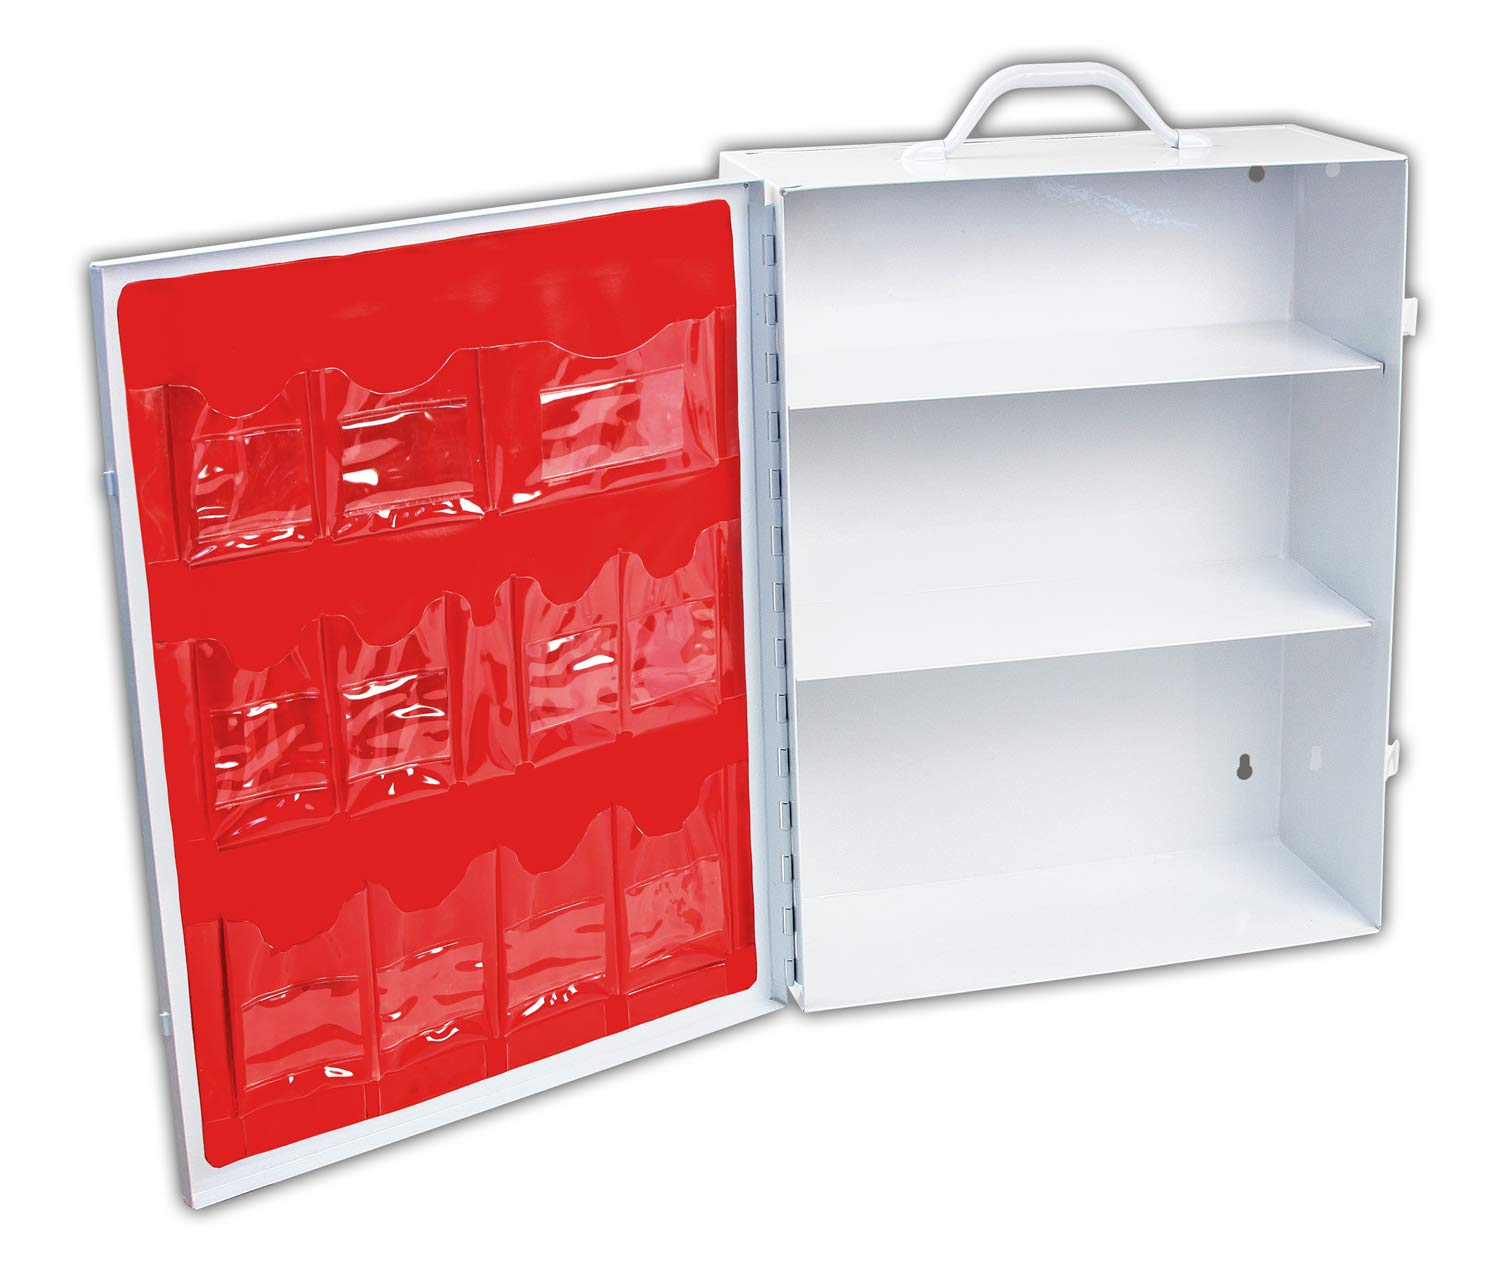 Rapid Care First Aid 62003 3 Shelf First Aid Cabinet without Product